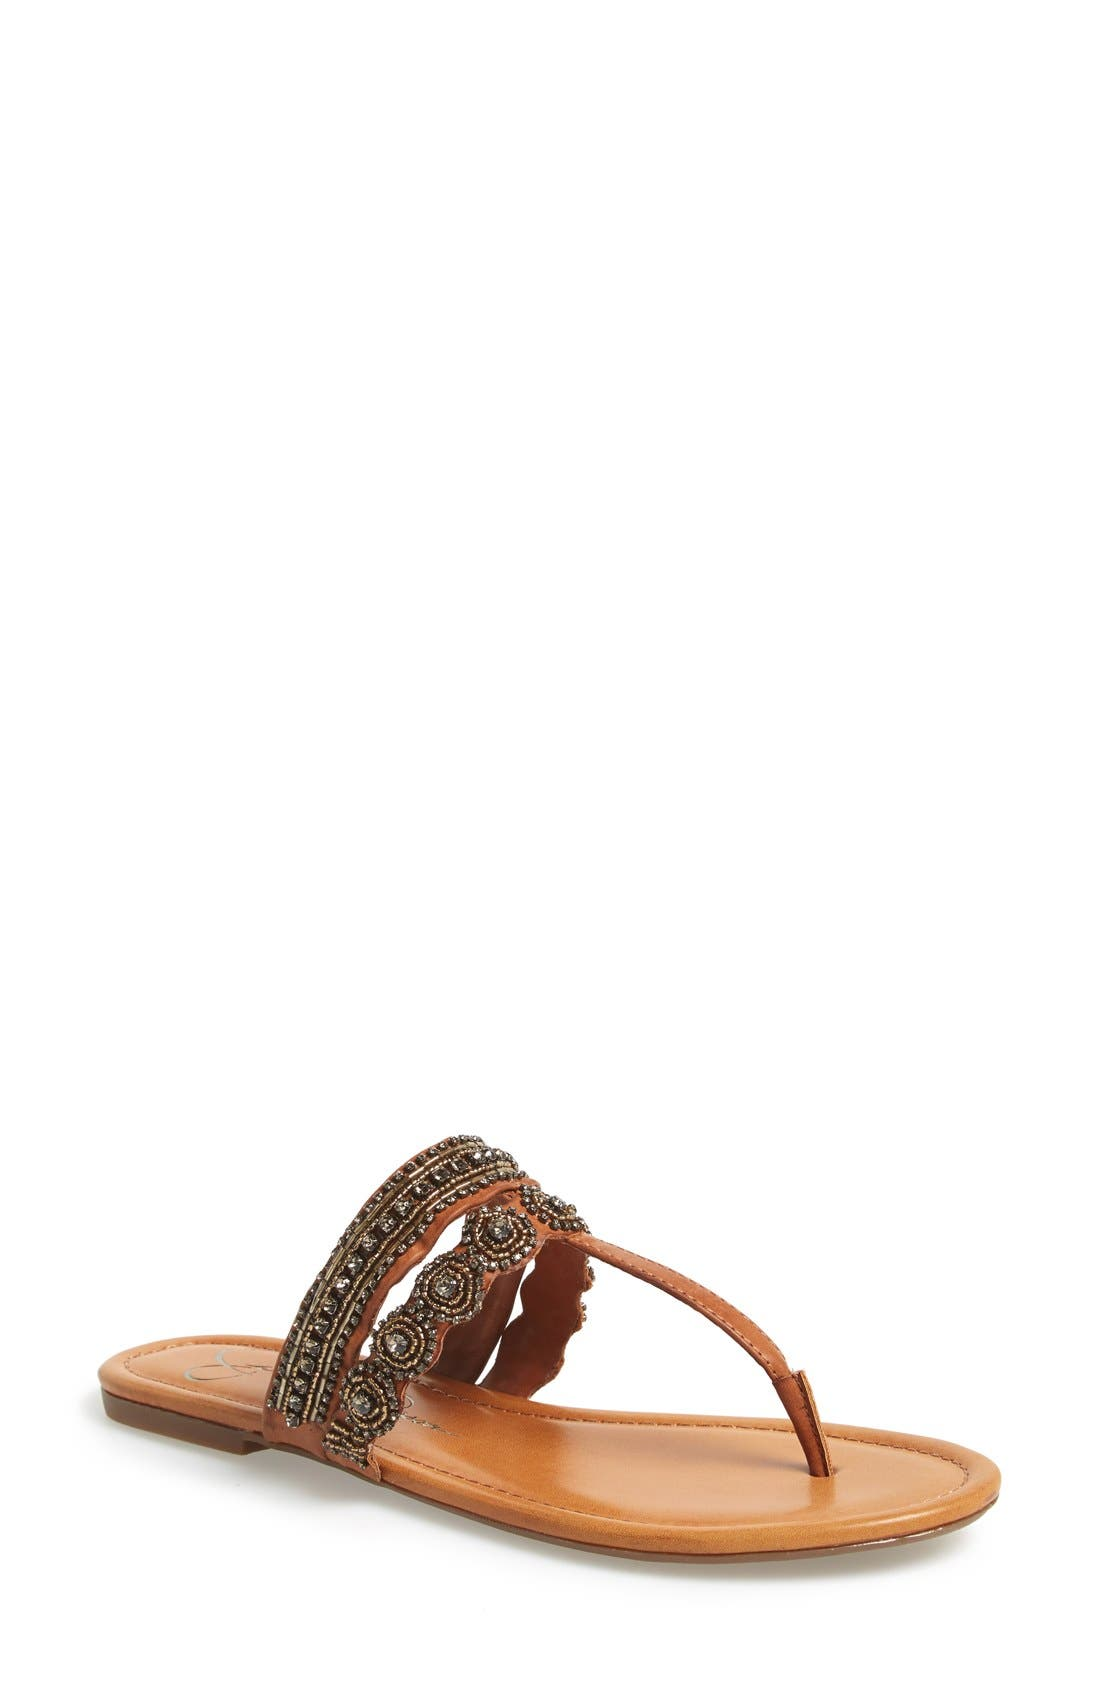 Alternate Image 1 Selected - Jessica Simpson 'Roelle' Embellished Sandal (Women)